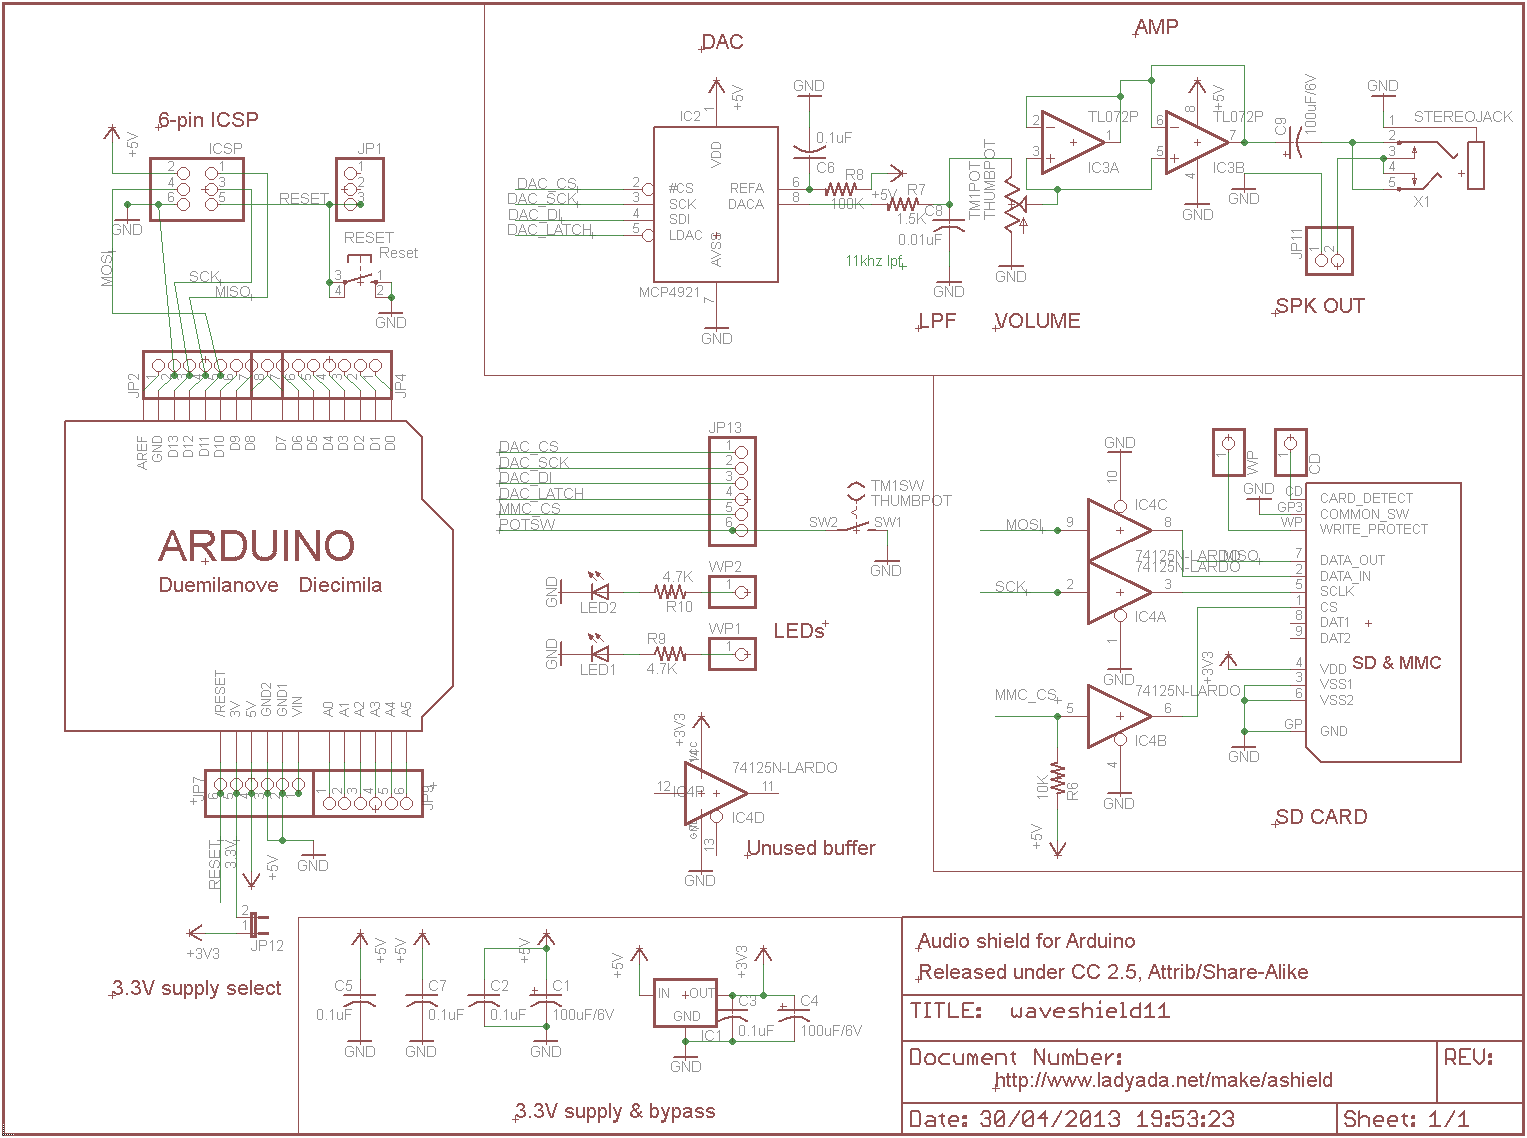 Wondrous In 18 Nixie Tube Clock Circuits And Wiring Diagrams Hazardous Wiring Cloud Loplapiotaidewilluminateatxorg